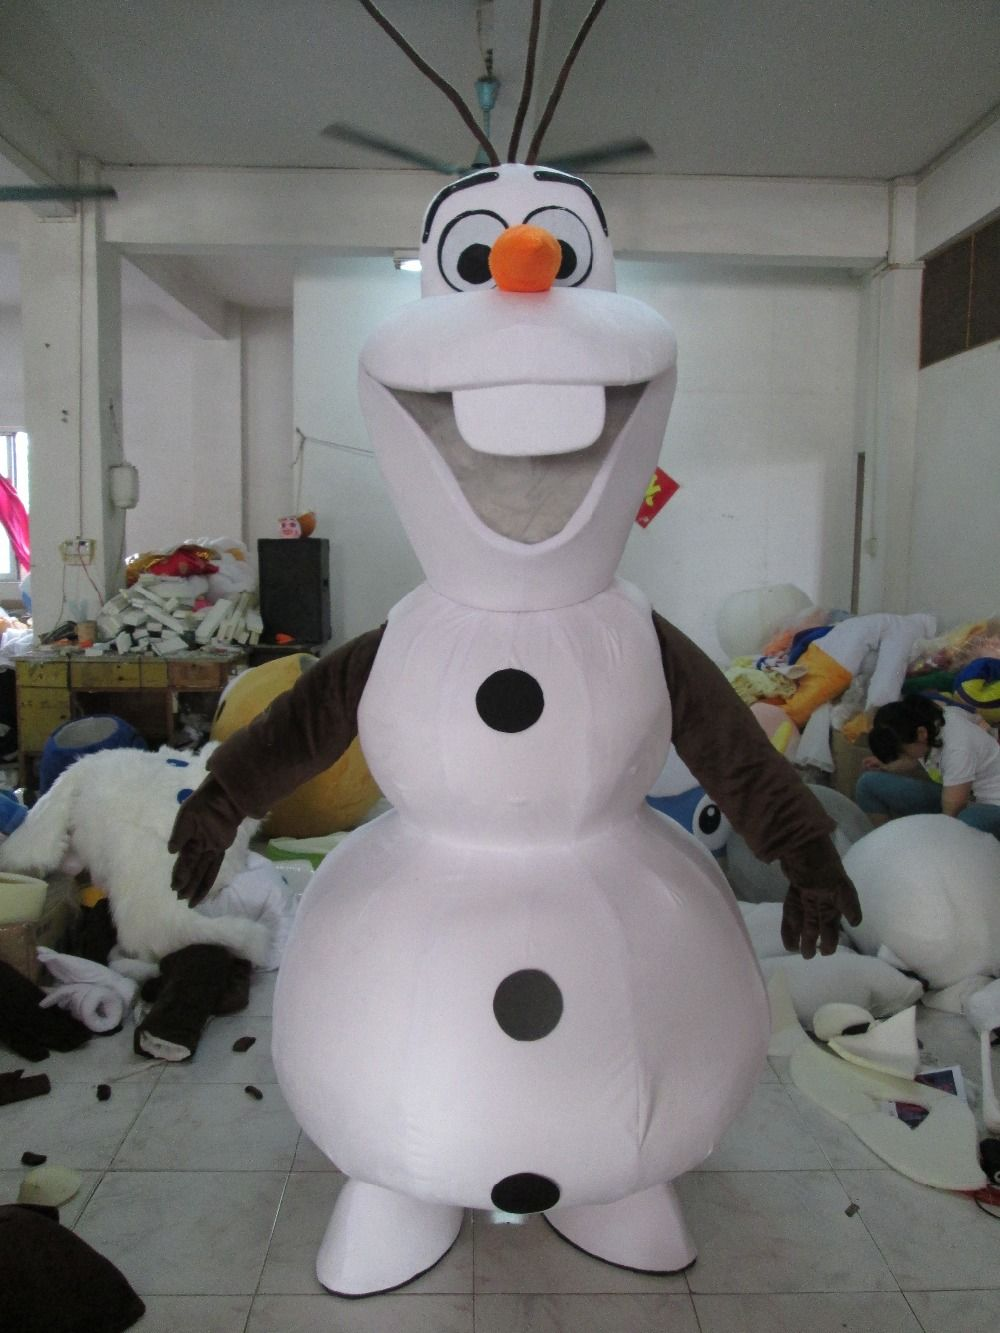 High Quality Party Smiling Olaf Mascot Costume Snowman Fancy Dress Adult EPE Material & High Quality Party Smiling Olaf Mascot Costume Snowman Fancy Dress ...